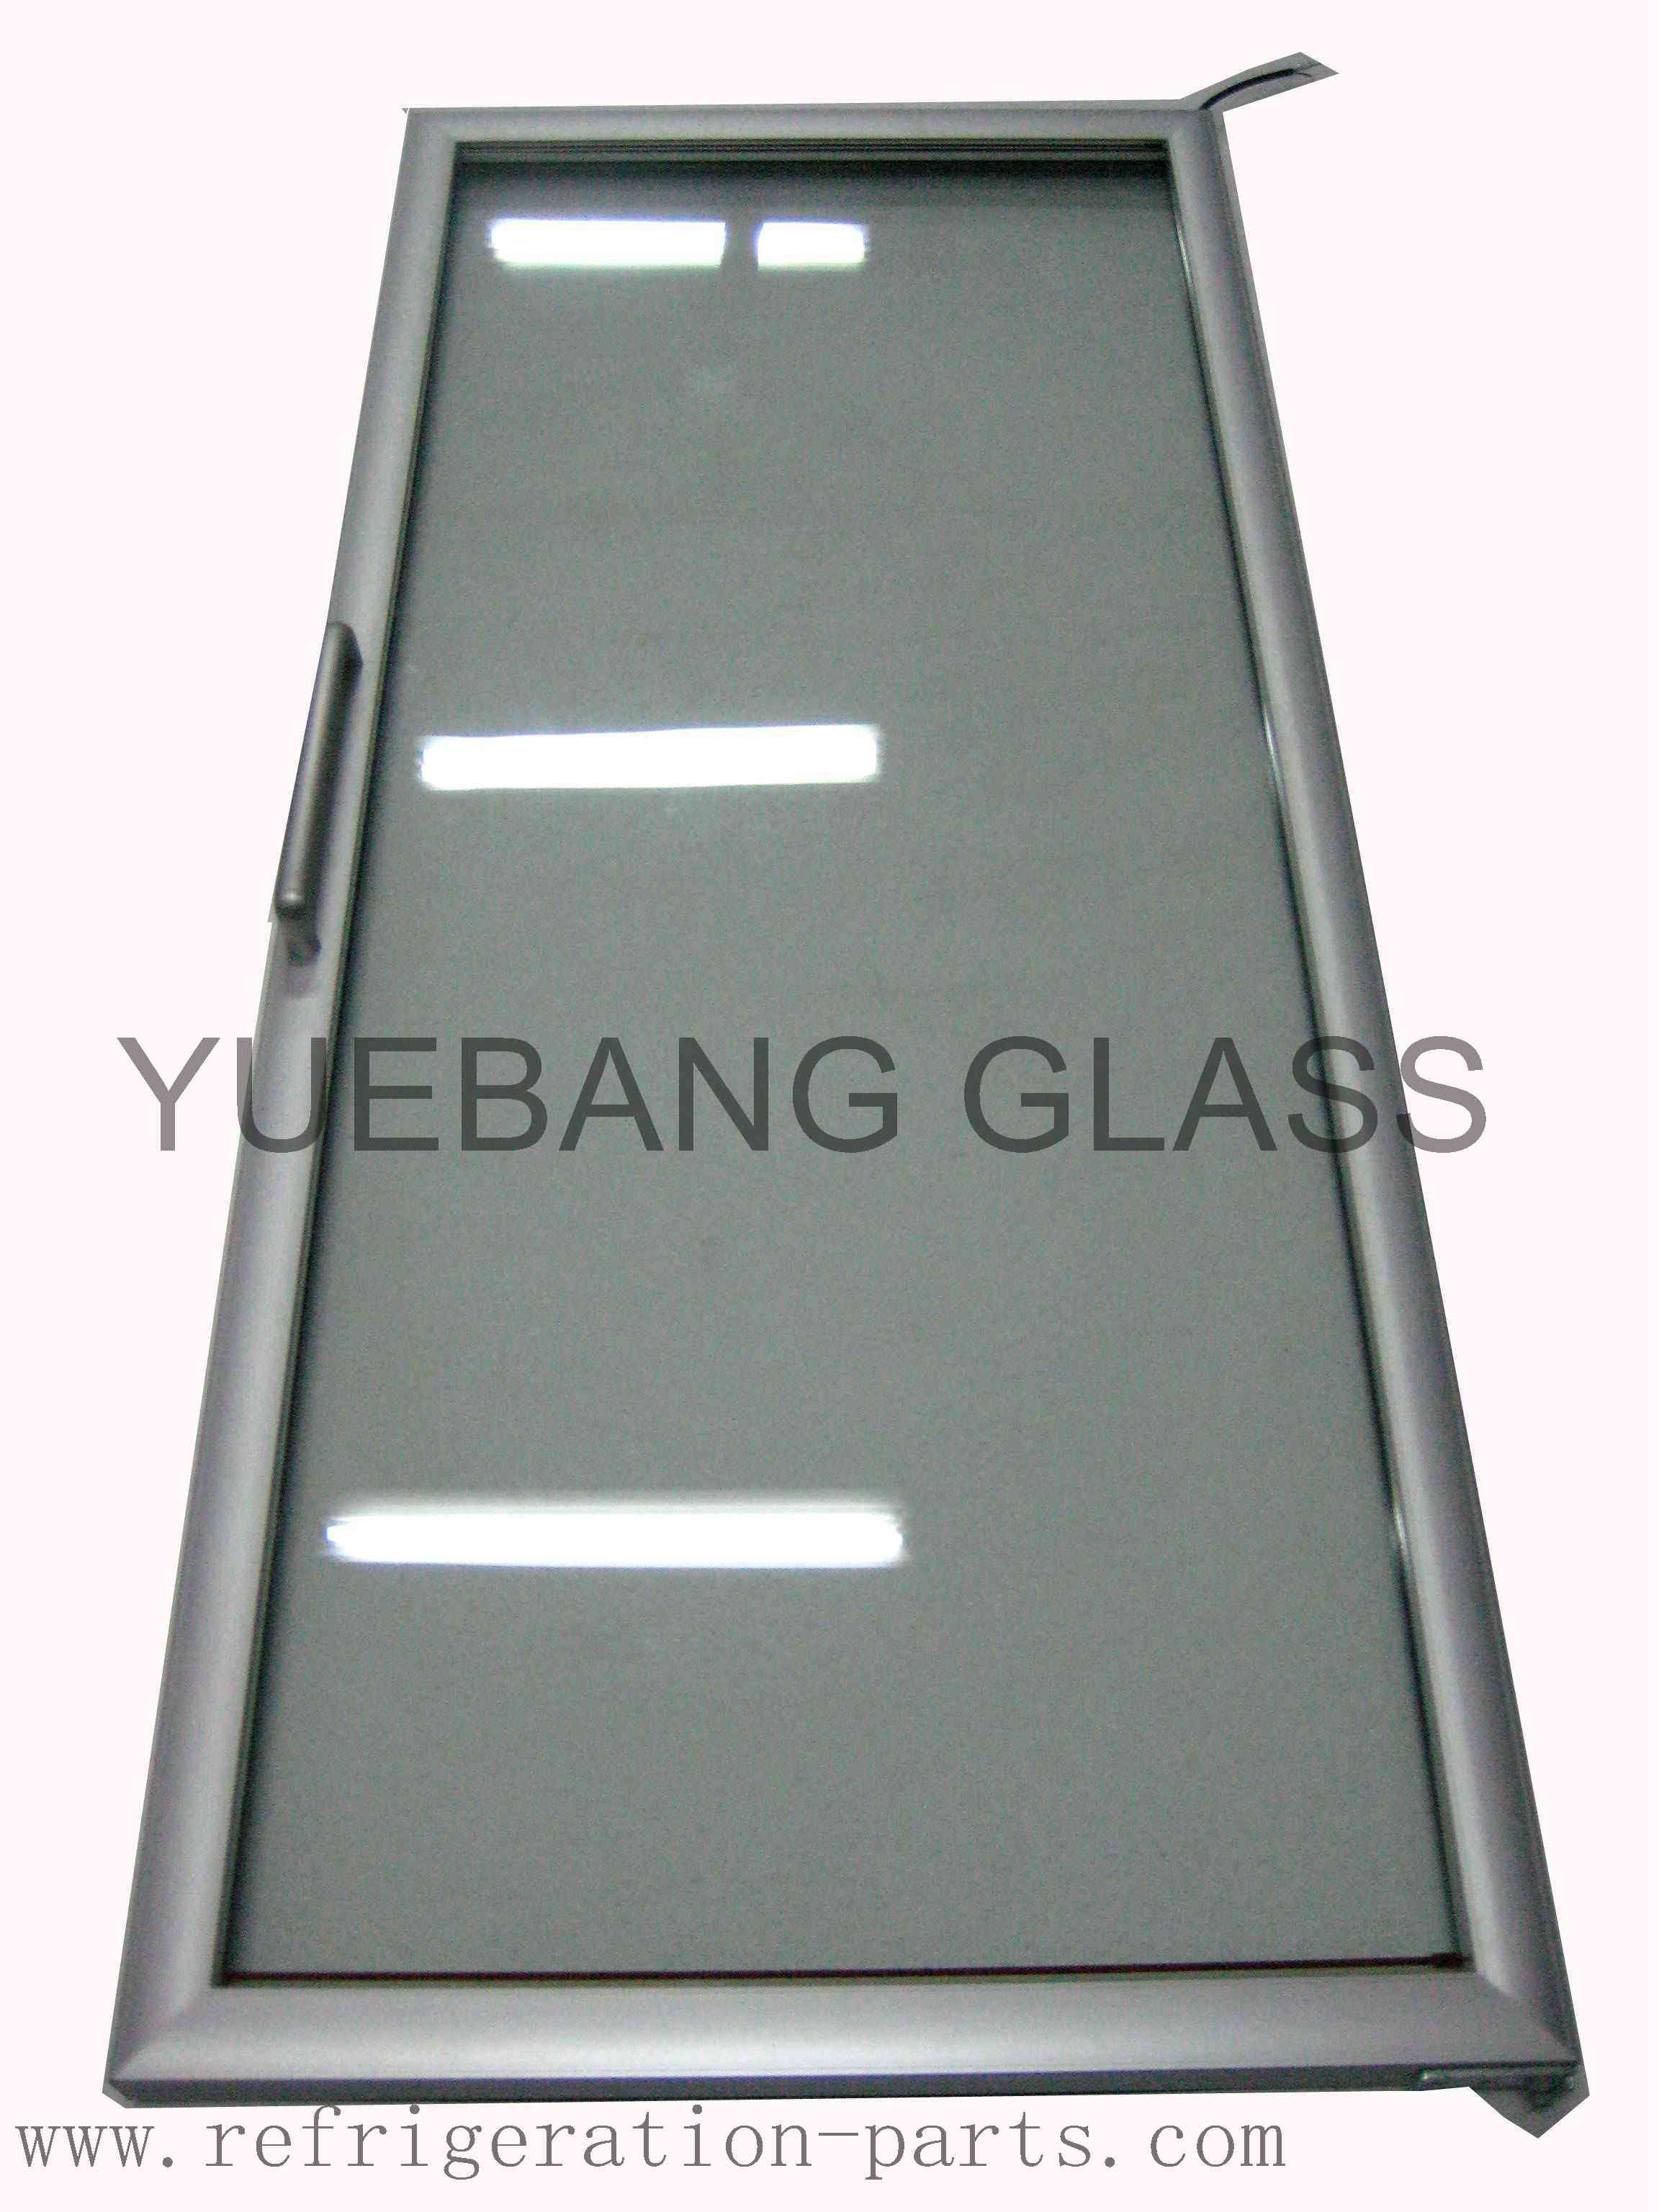 90 Degree Positioning Freezer Glass Door